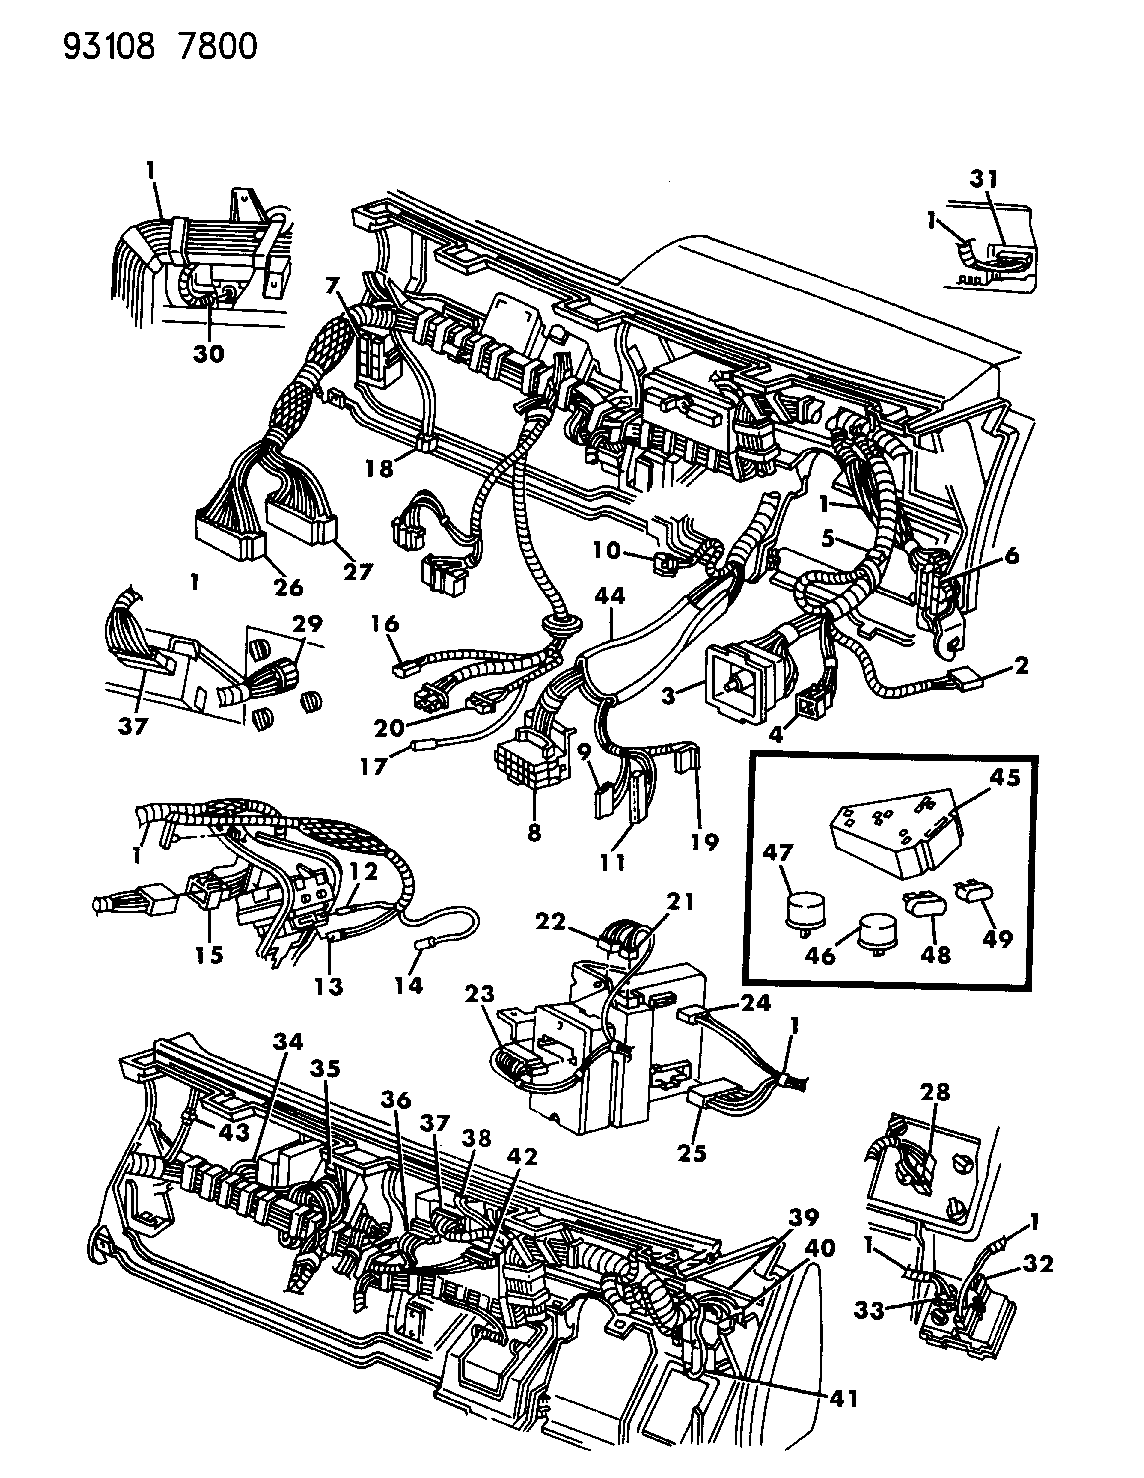 1993 Dodge Dynasty Fuse Box Wiring Library